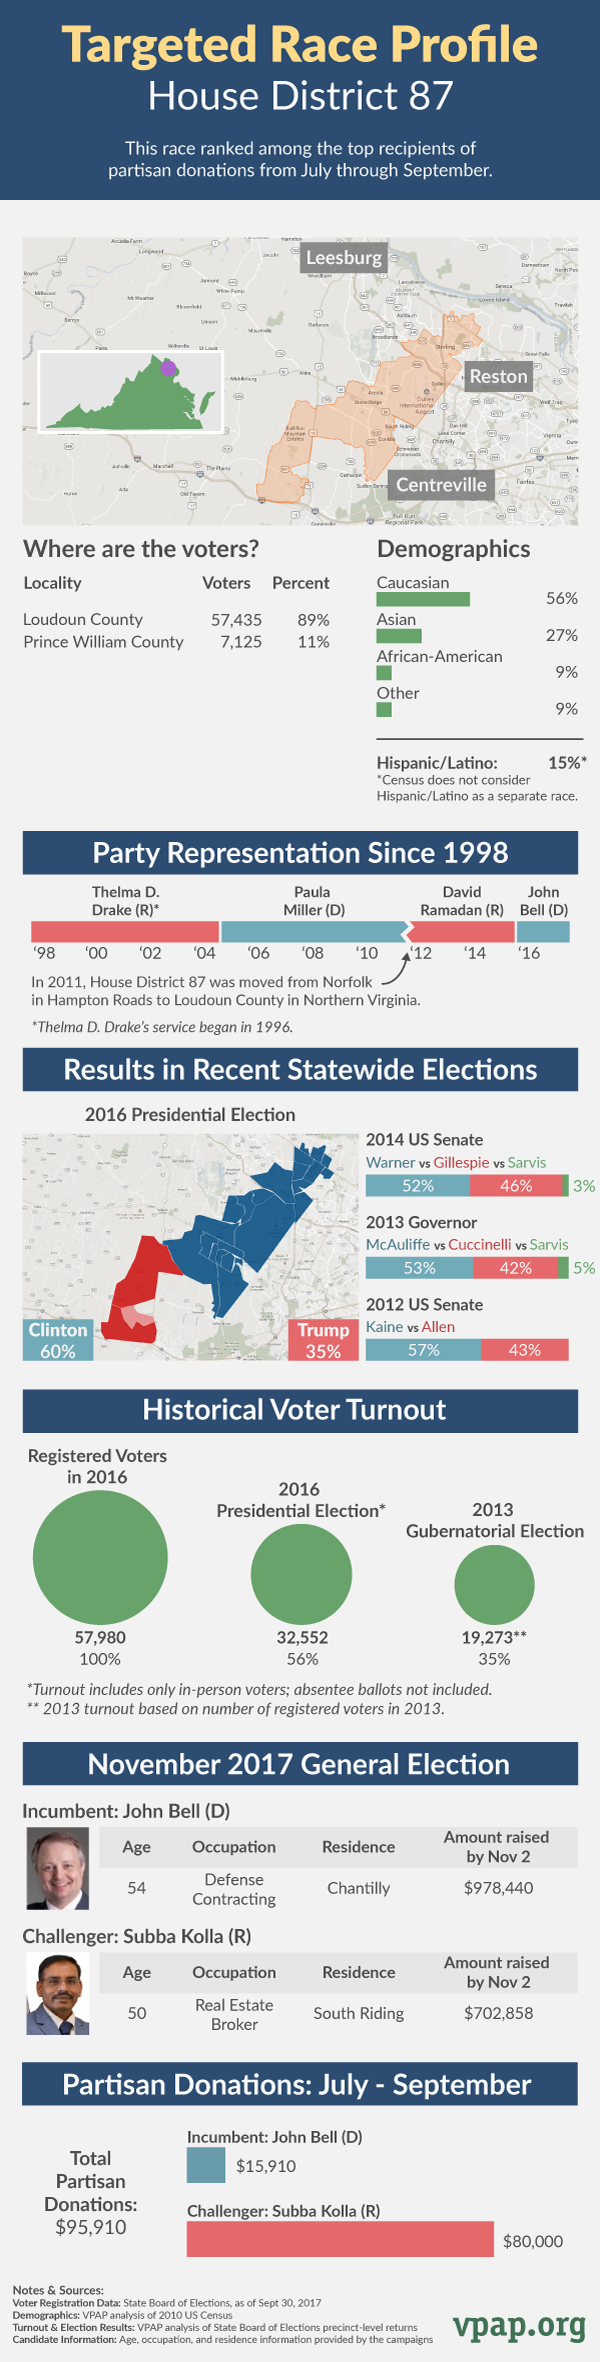 Targeted Race Profile: House District 87